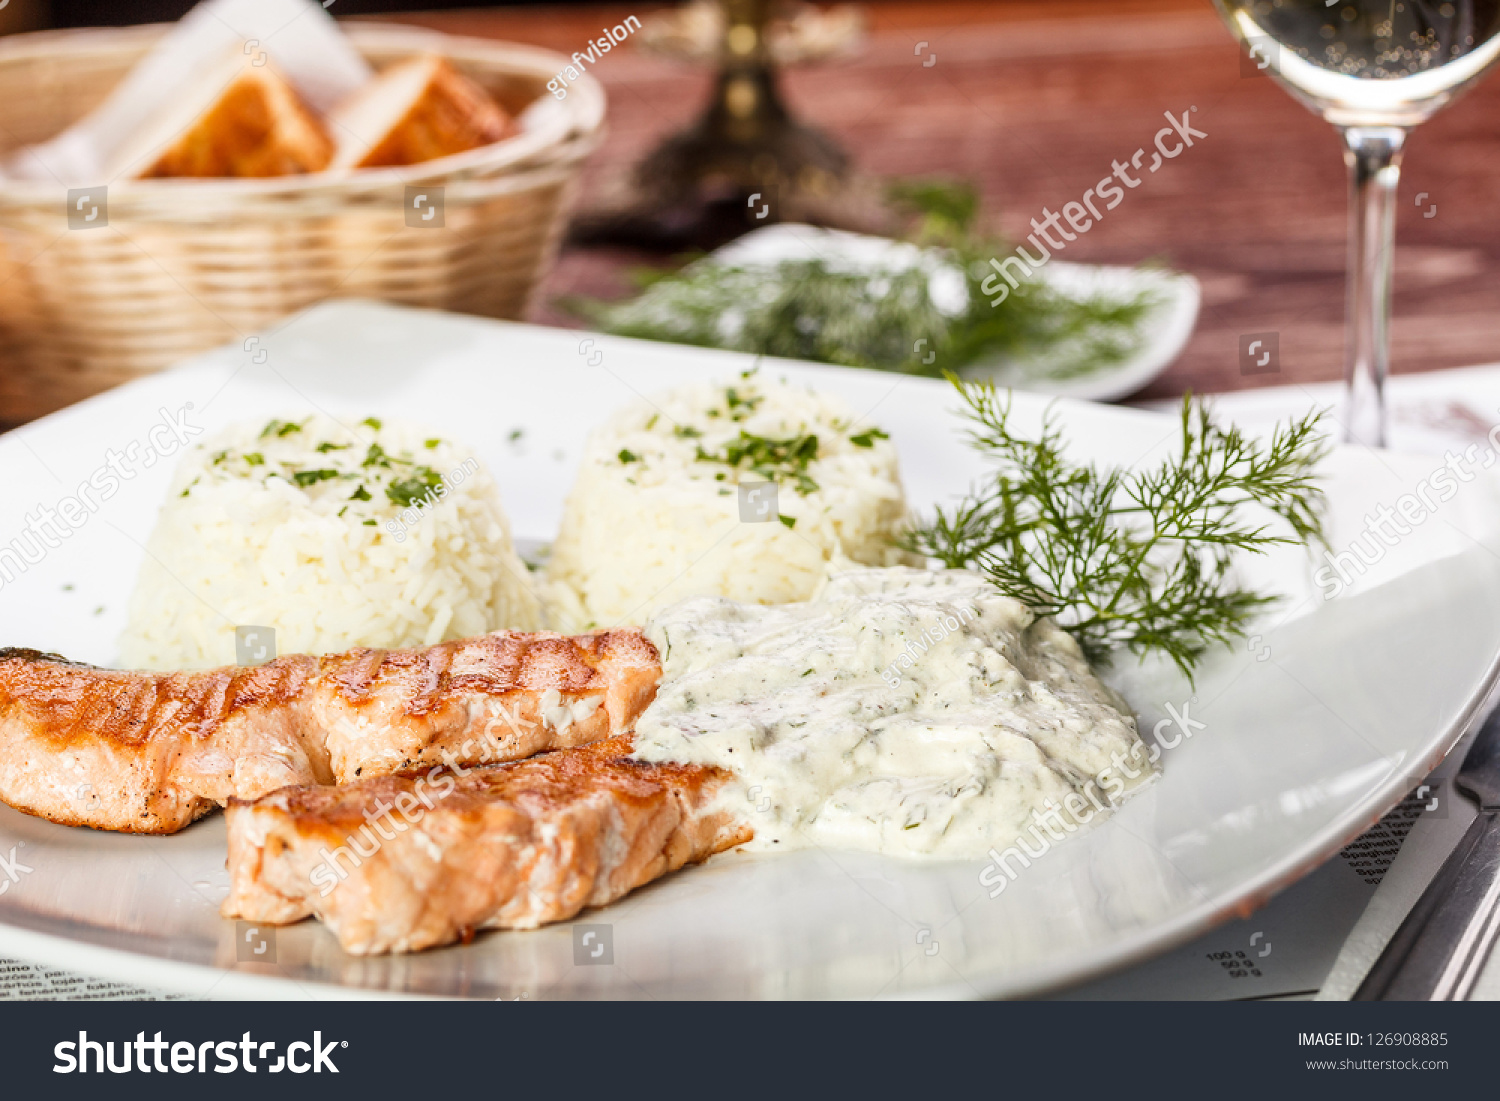 Roasted Salmon With Dill Sauce Served On Restaurant Stock ...